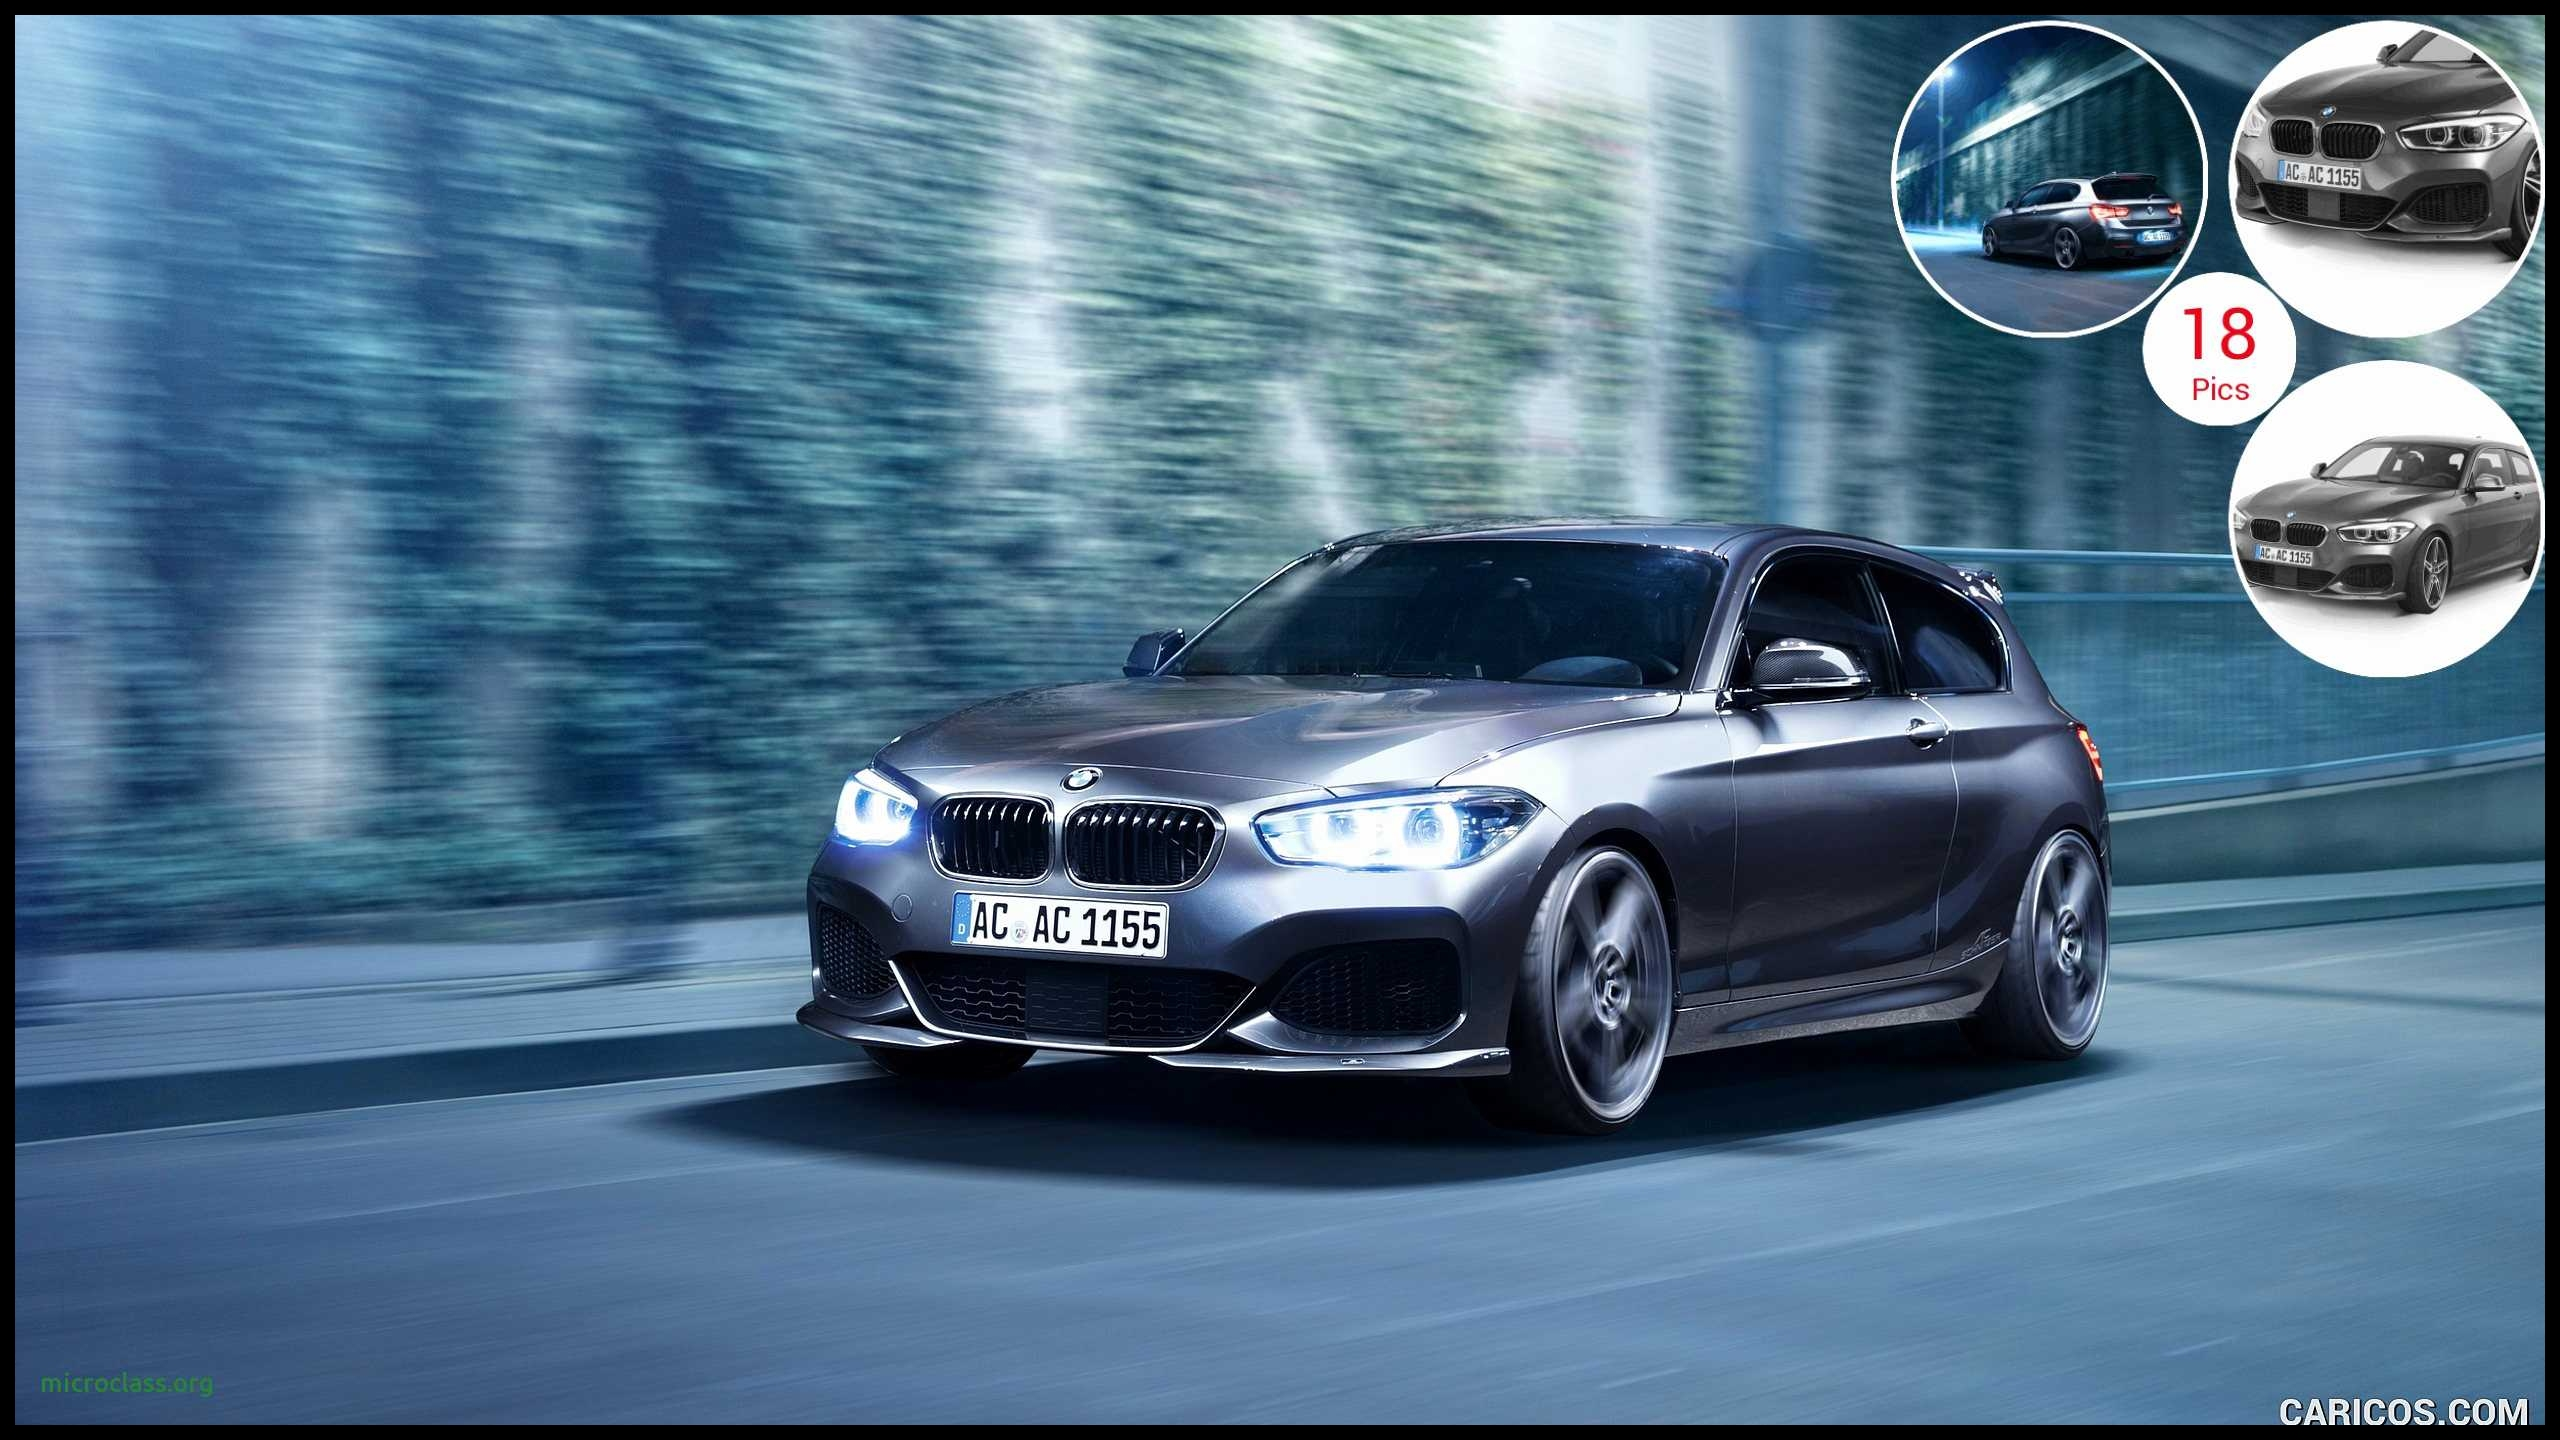 Hd Car Wallpapers Awesome 2016 Ac Schnitzer Acs1 5 0d Bmw 1 Series Elegant Disney